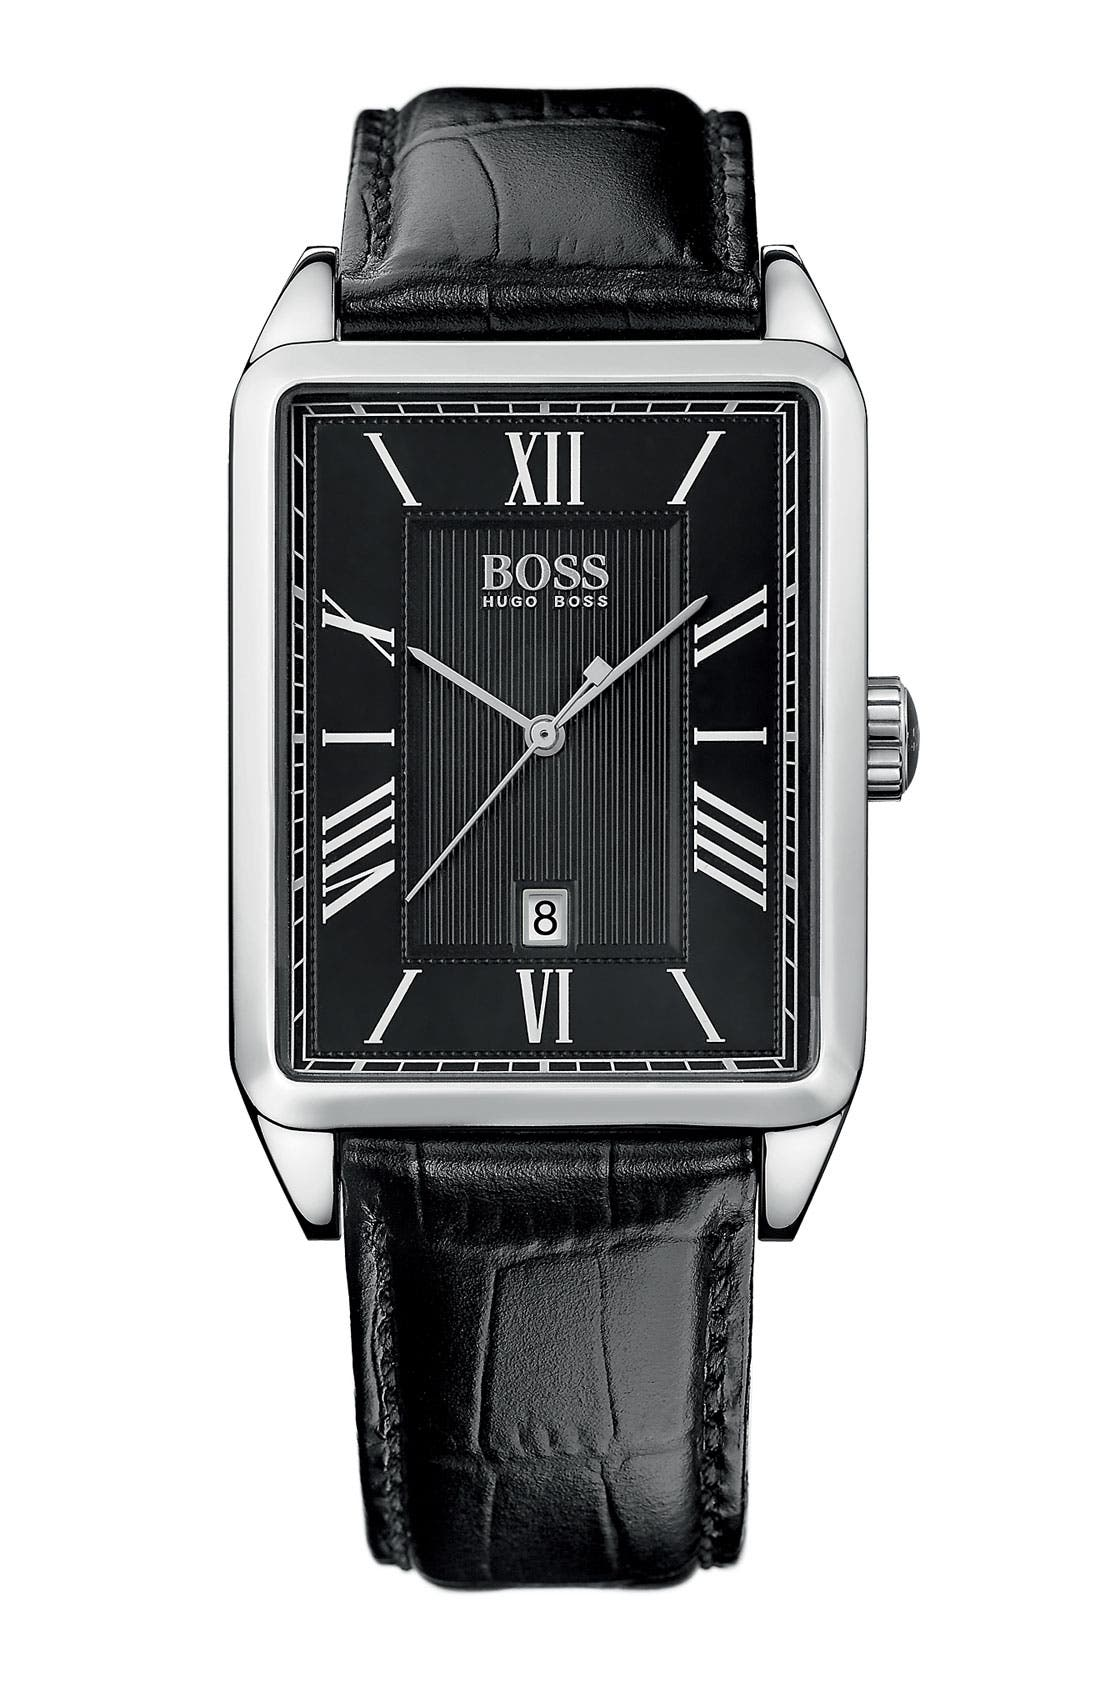 Main Image - BOSS HUGO BOSS Rectangular Case Leather Strap Watch, 33mm x 42mm